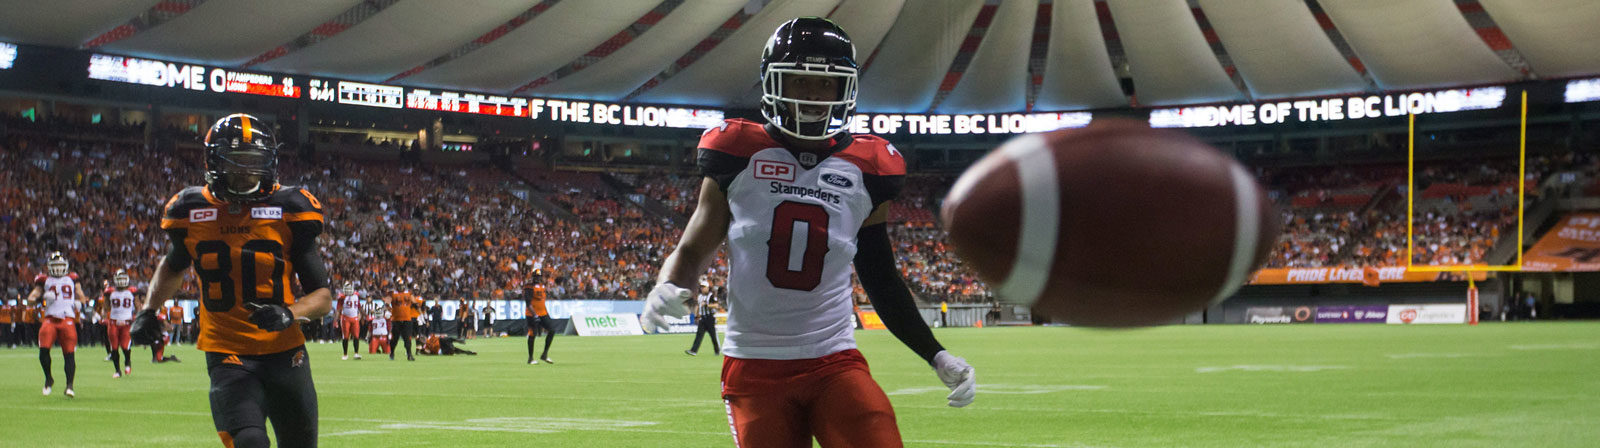 About Last Night Calgary Stampeders